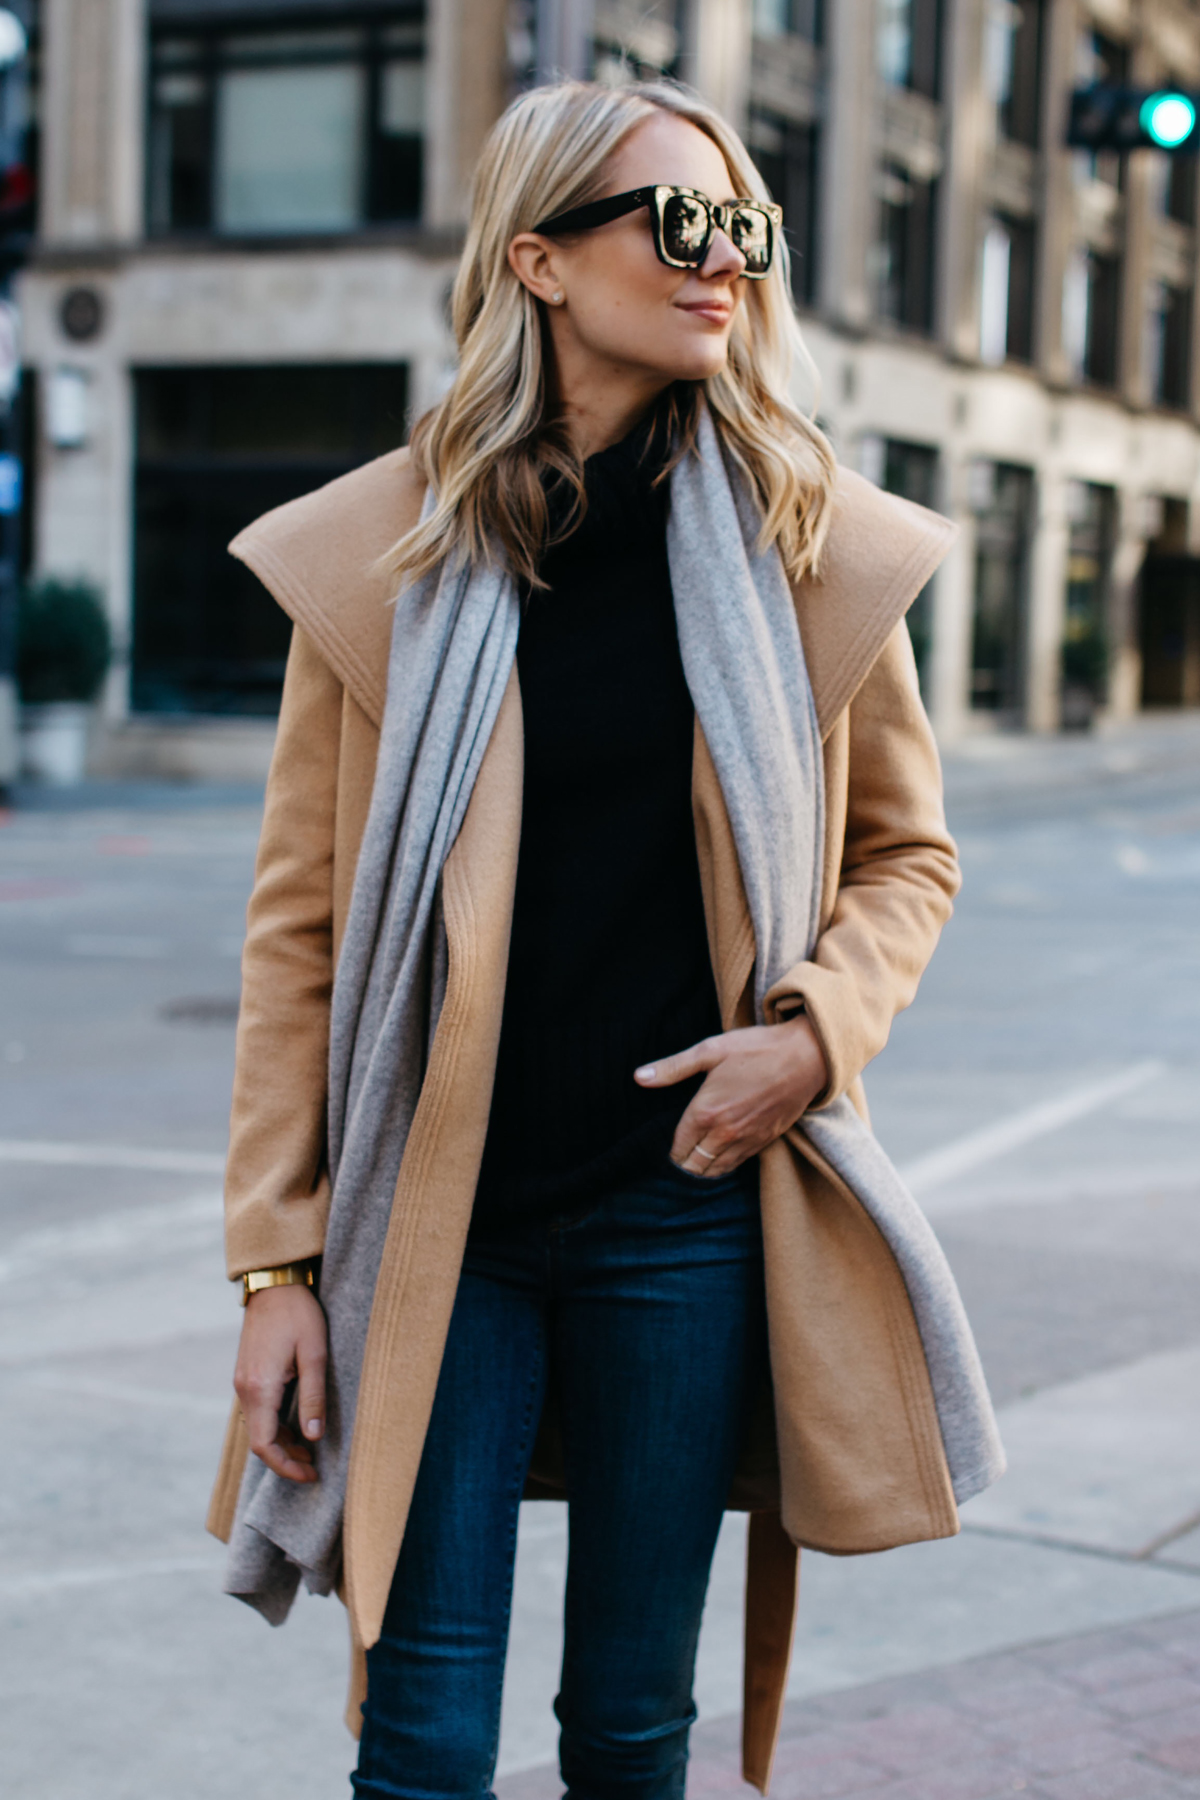 Blonde Woman Wearing ann taylor camel wrap coat grey scarf black turtleneck sweater Fashion Jackson Dallas Blogger Fashion Blogger Street Style